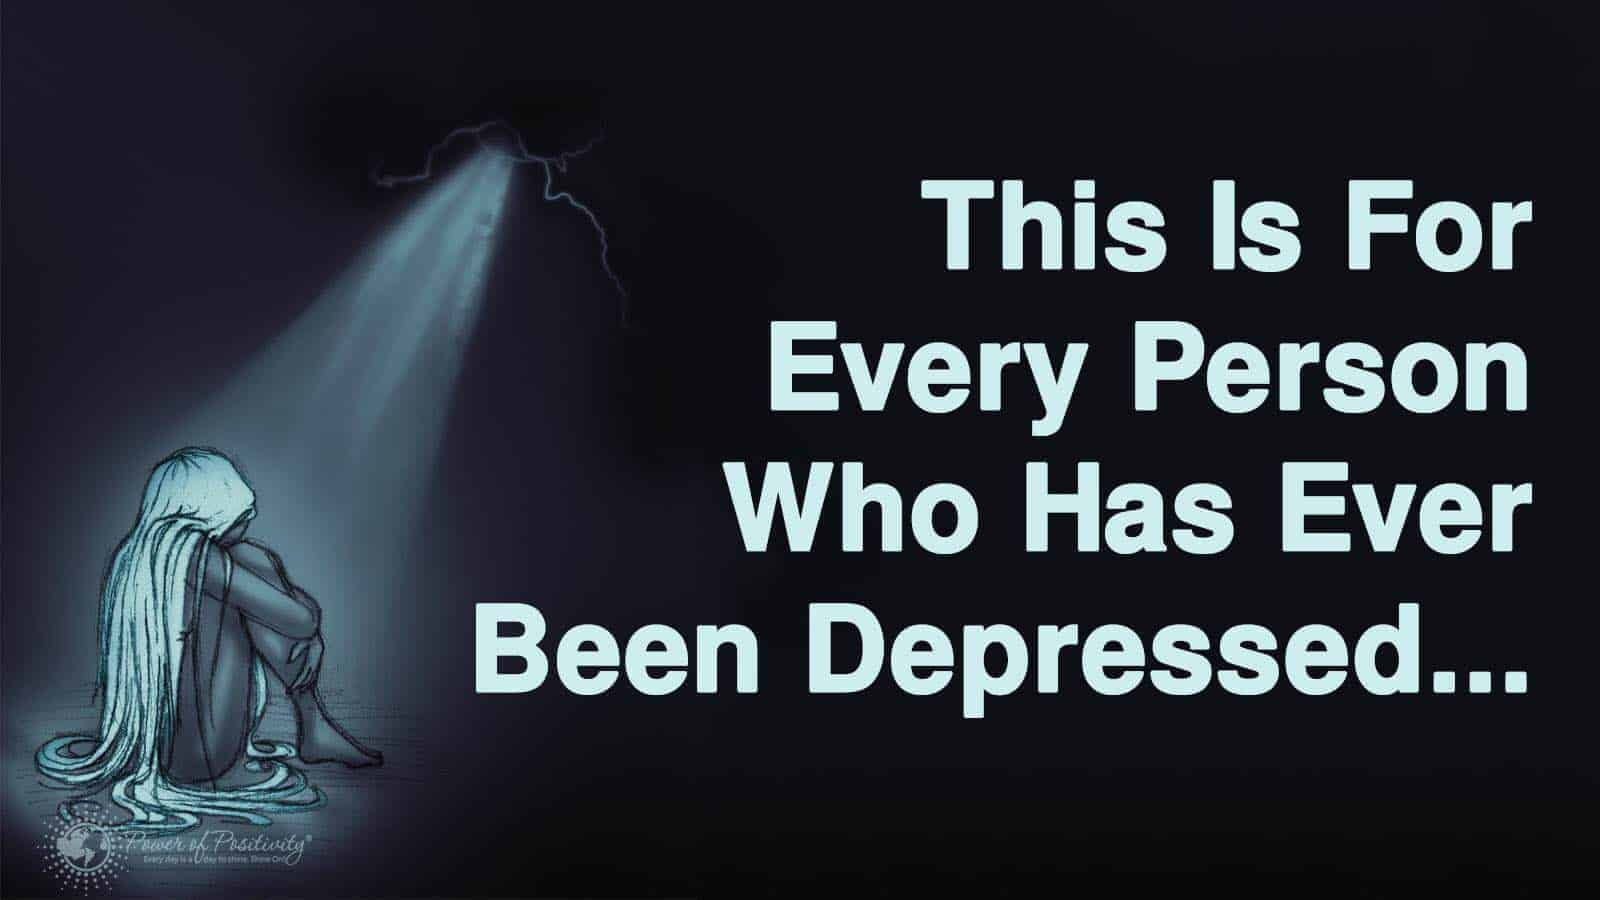 This Is For Every Person Who Has Ever Been Depressed